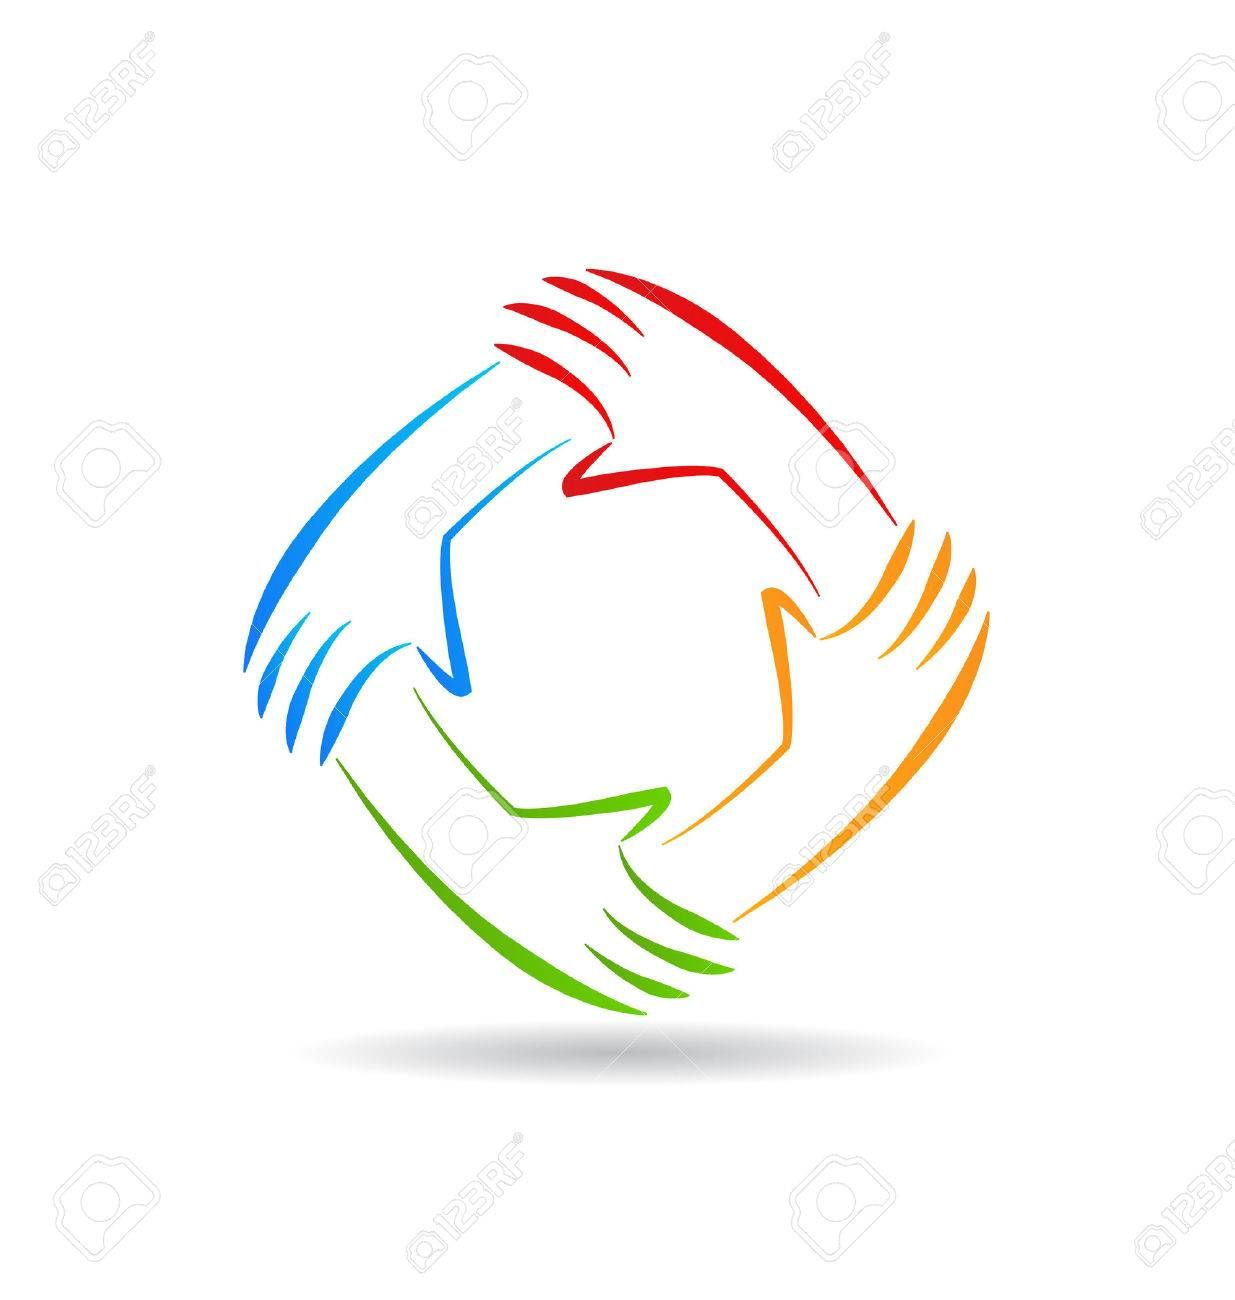 Teamwork Unity Hands Identity Card Vector Icon Royalty Free Cliparts Vectors And Stock Illustration Image 36630489 Unity Logo Hand Logo Teamwork Logo